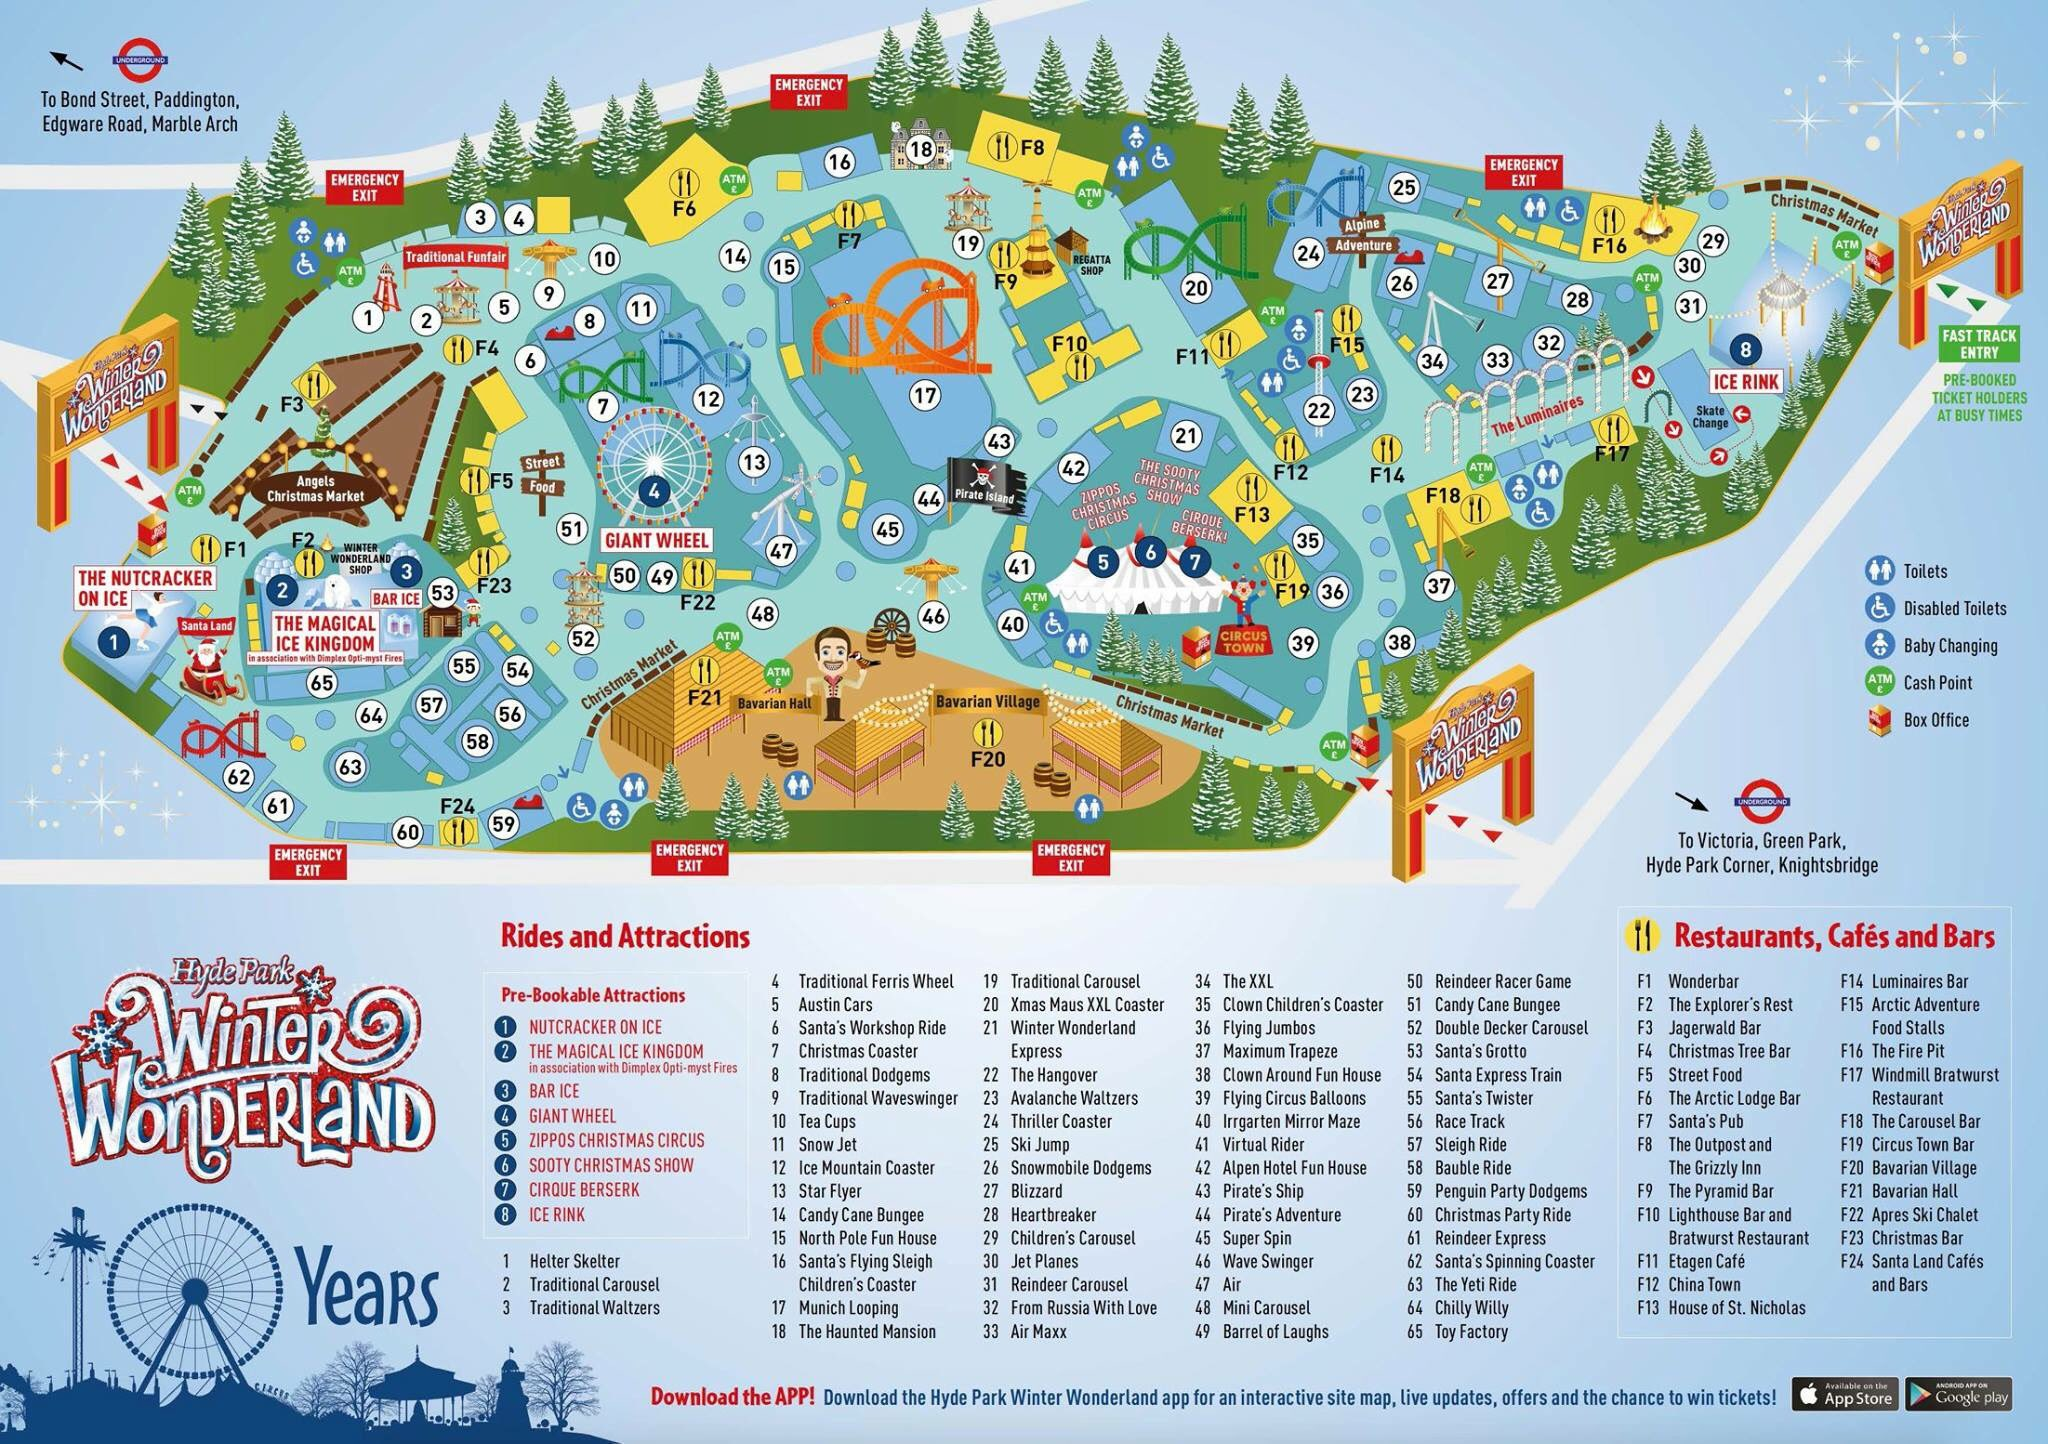 Winter wonderland on twitter check out the new map for hyde park winter wonderland on twitter check out the new map for hyde park winter wonderland 2016 httpstu7ihb3yapy gumiabroncs Gallery